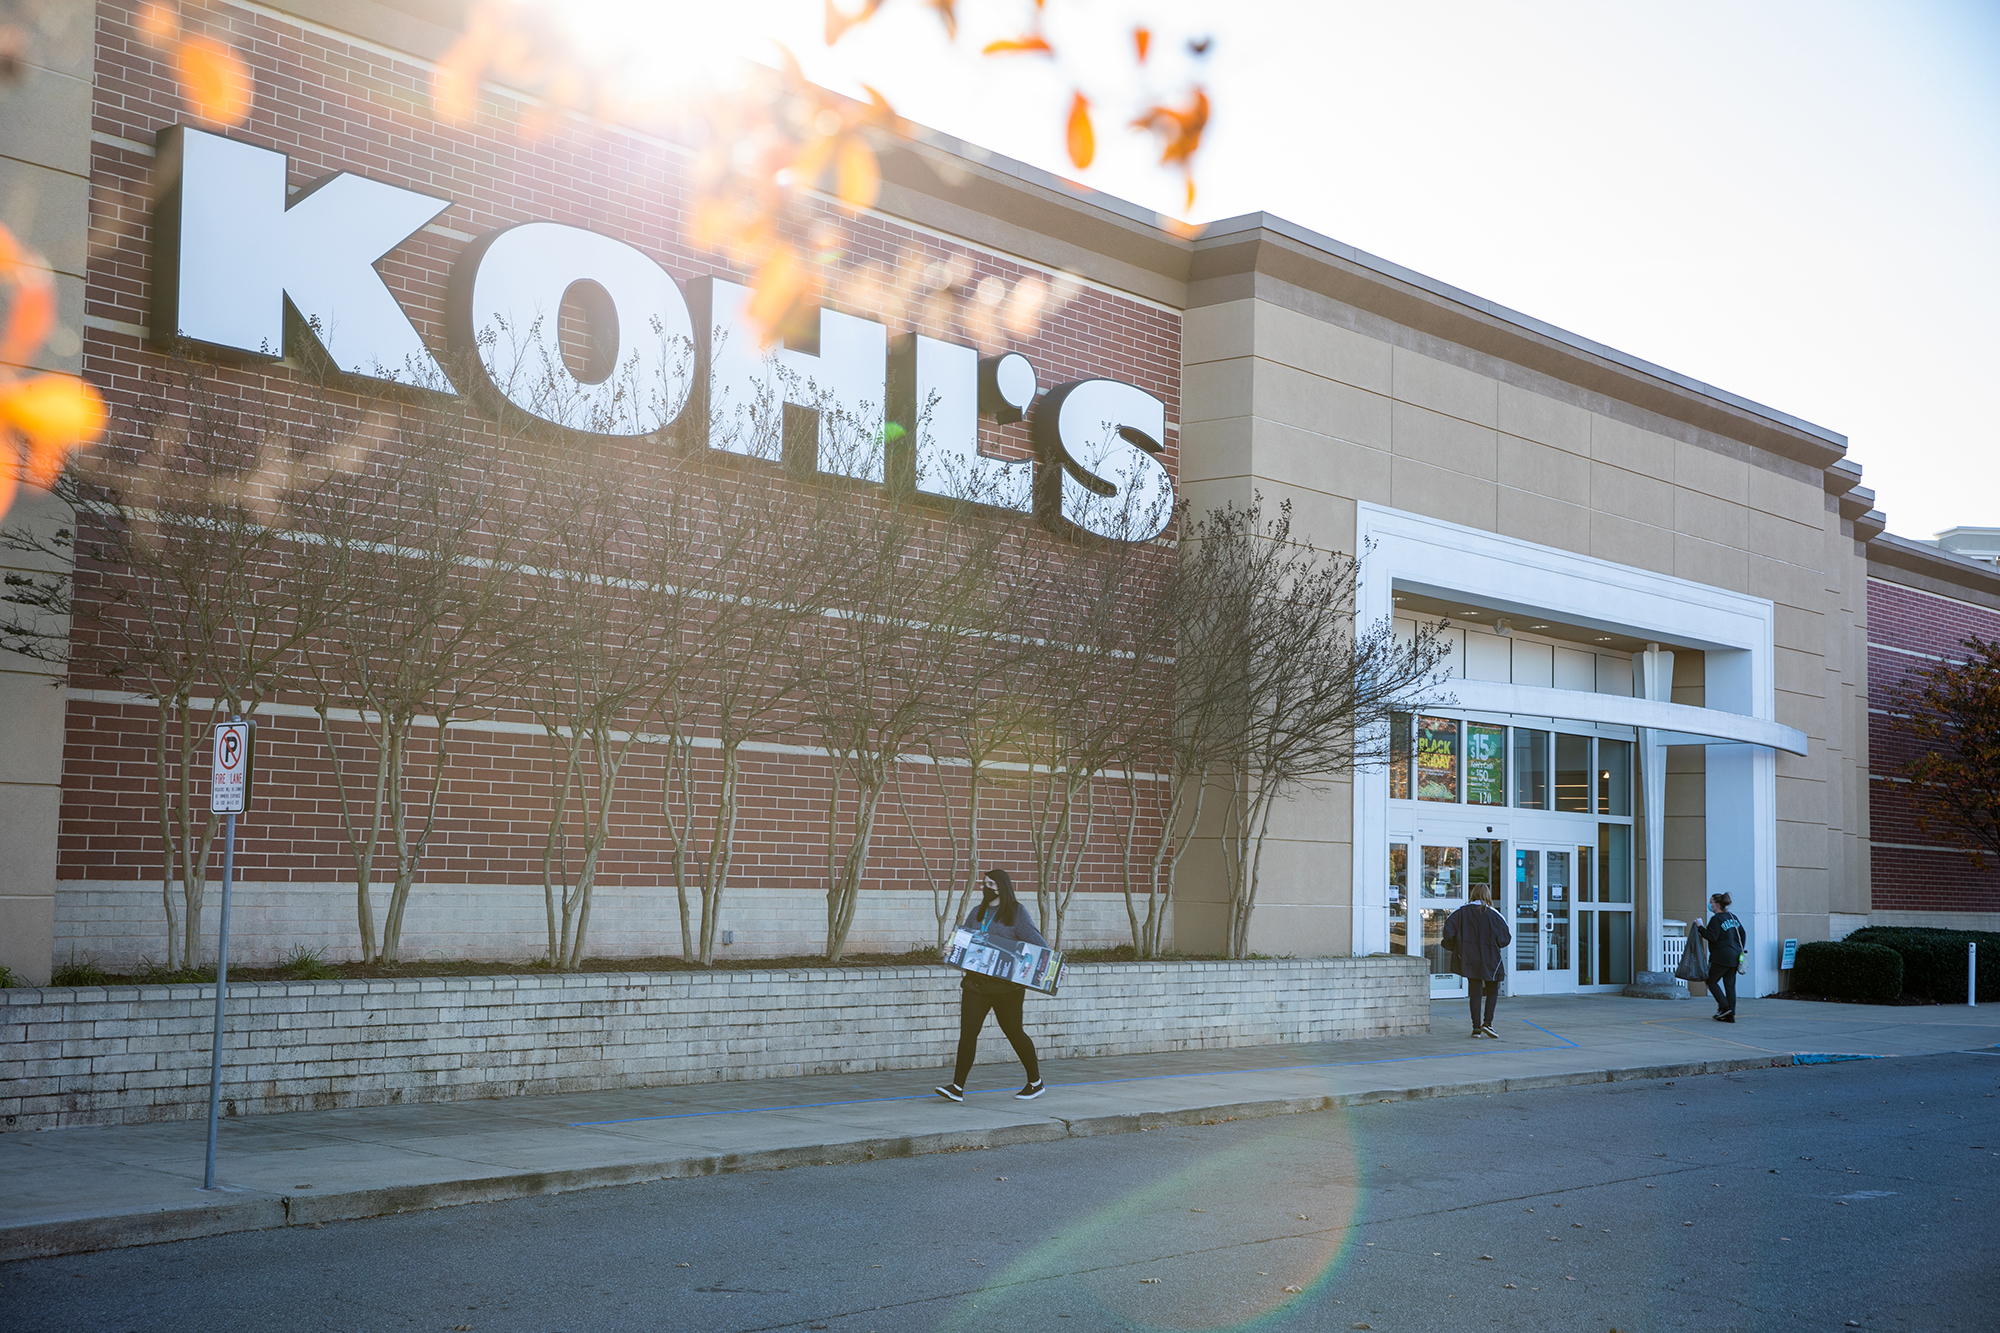 Kohl's tried striking a deal with Amazon. It wasn't enough